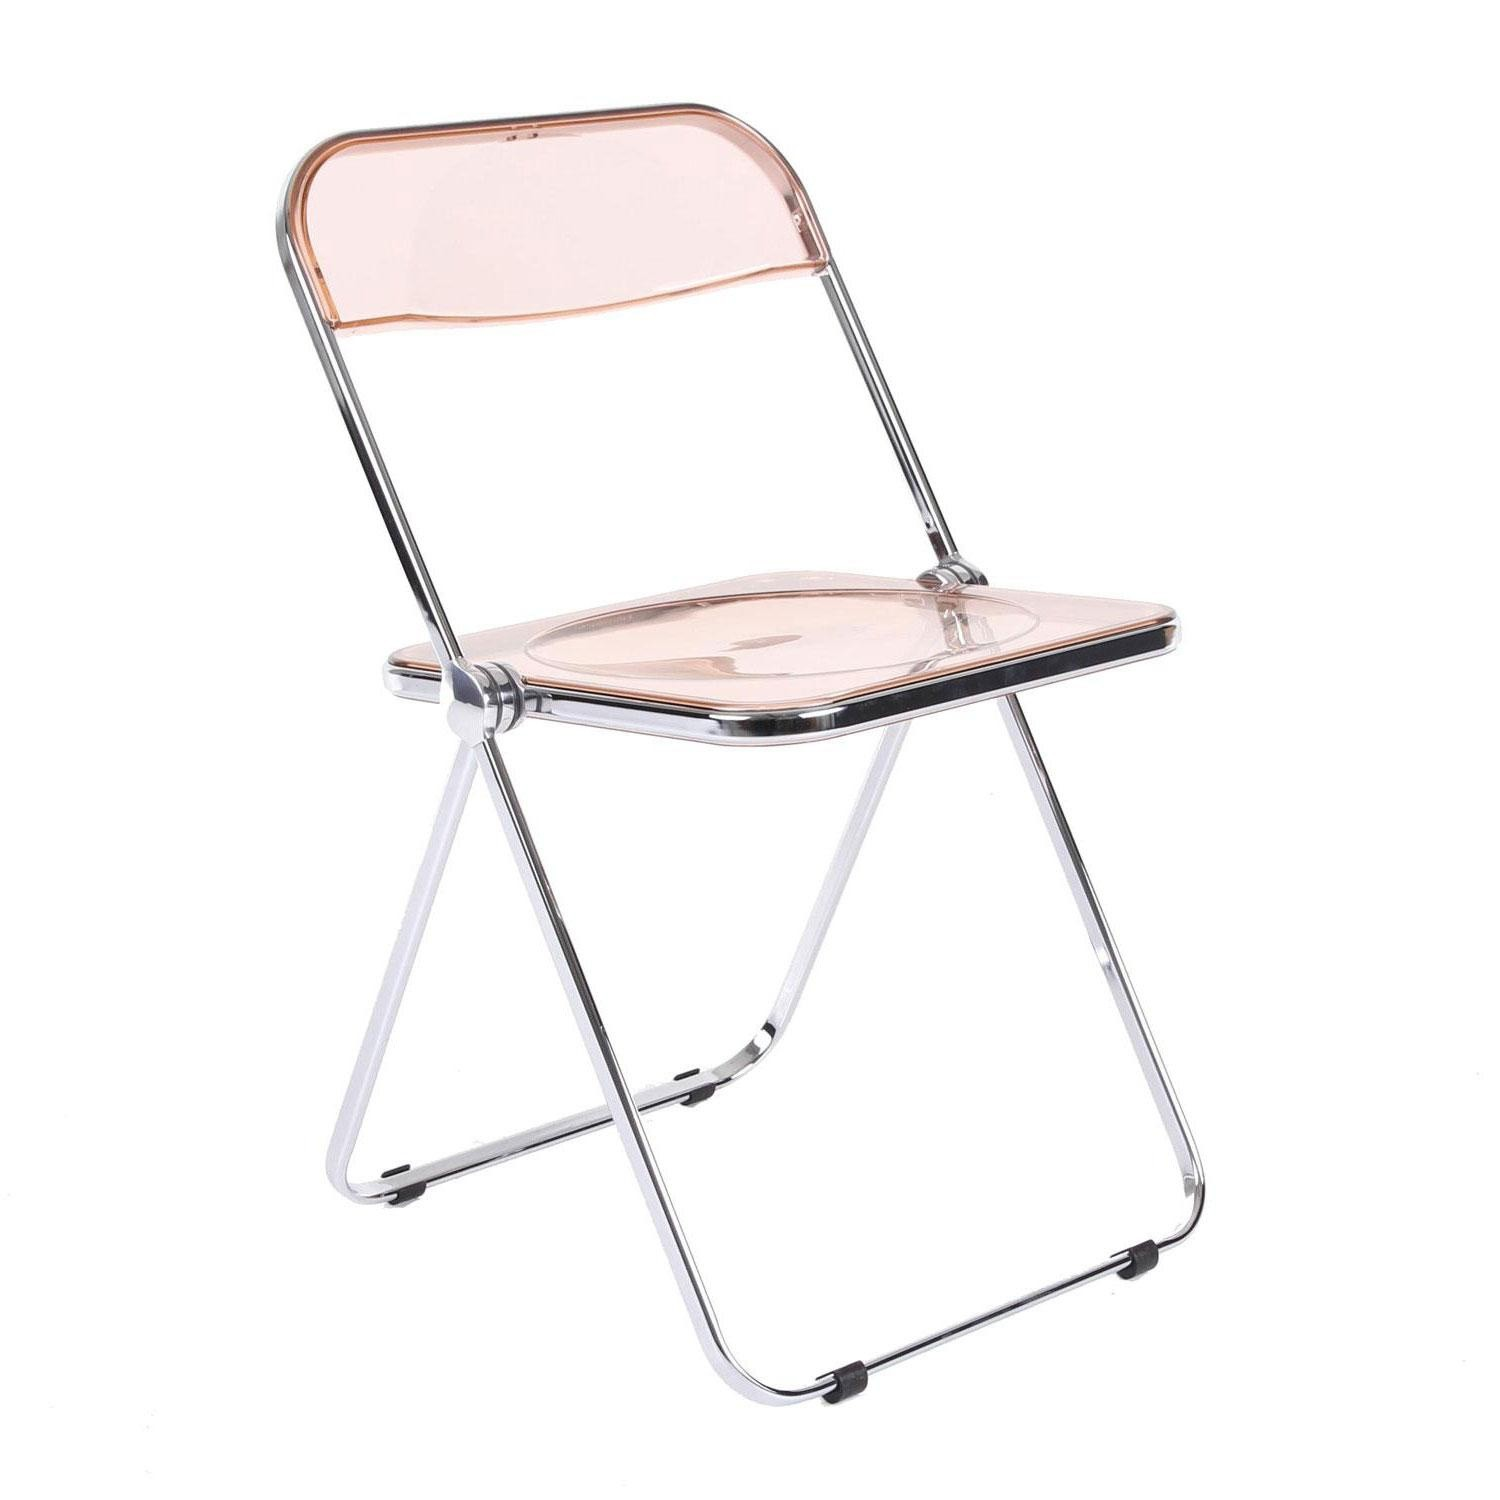 Castelli Folding chair PLIA, smoked pink